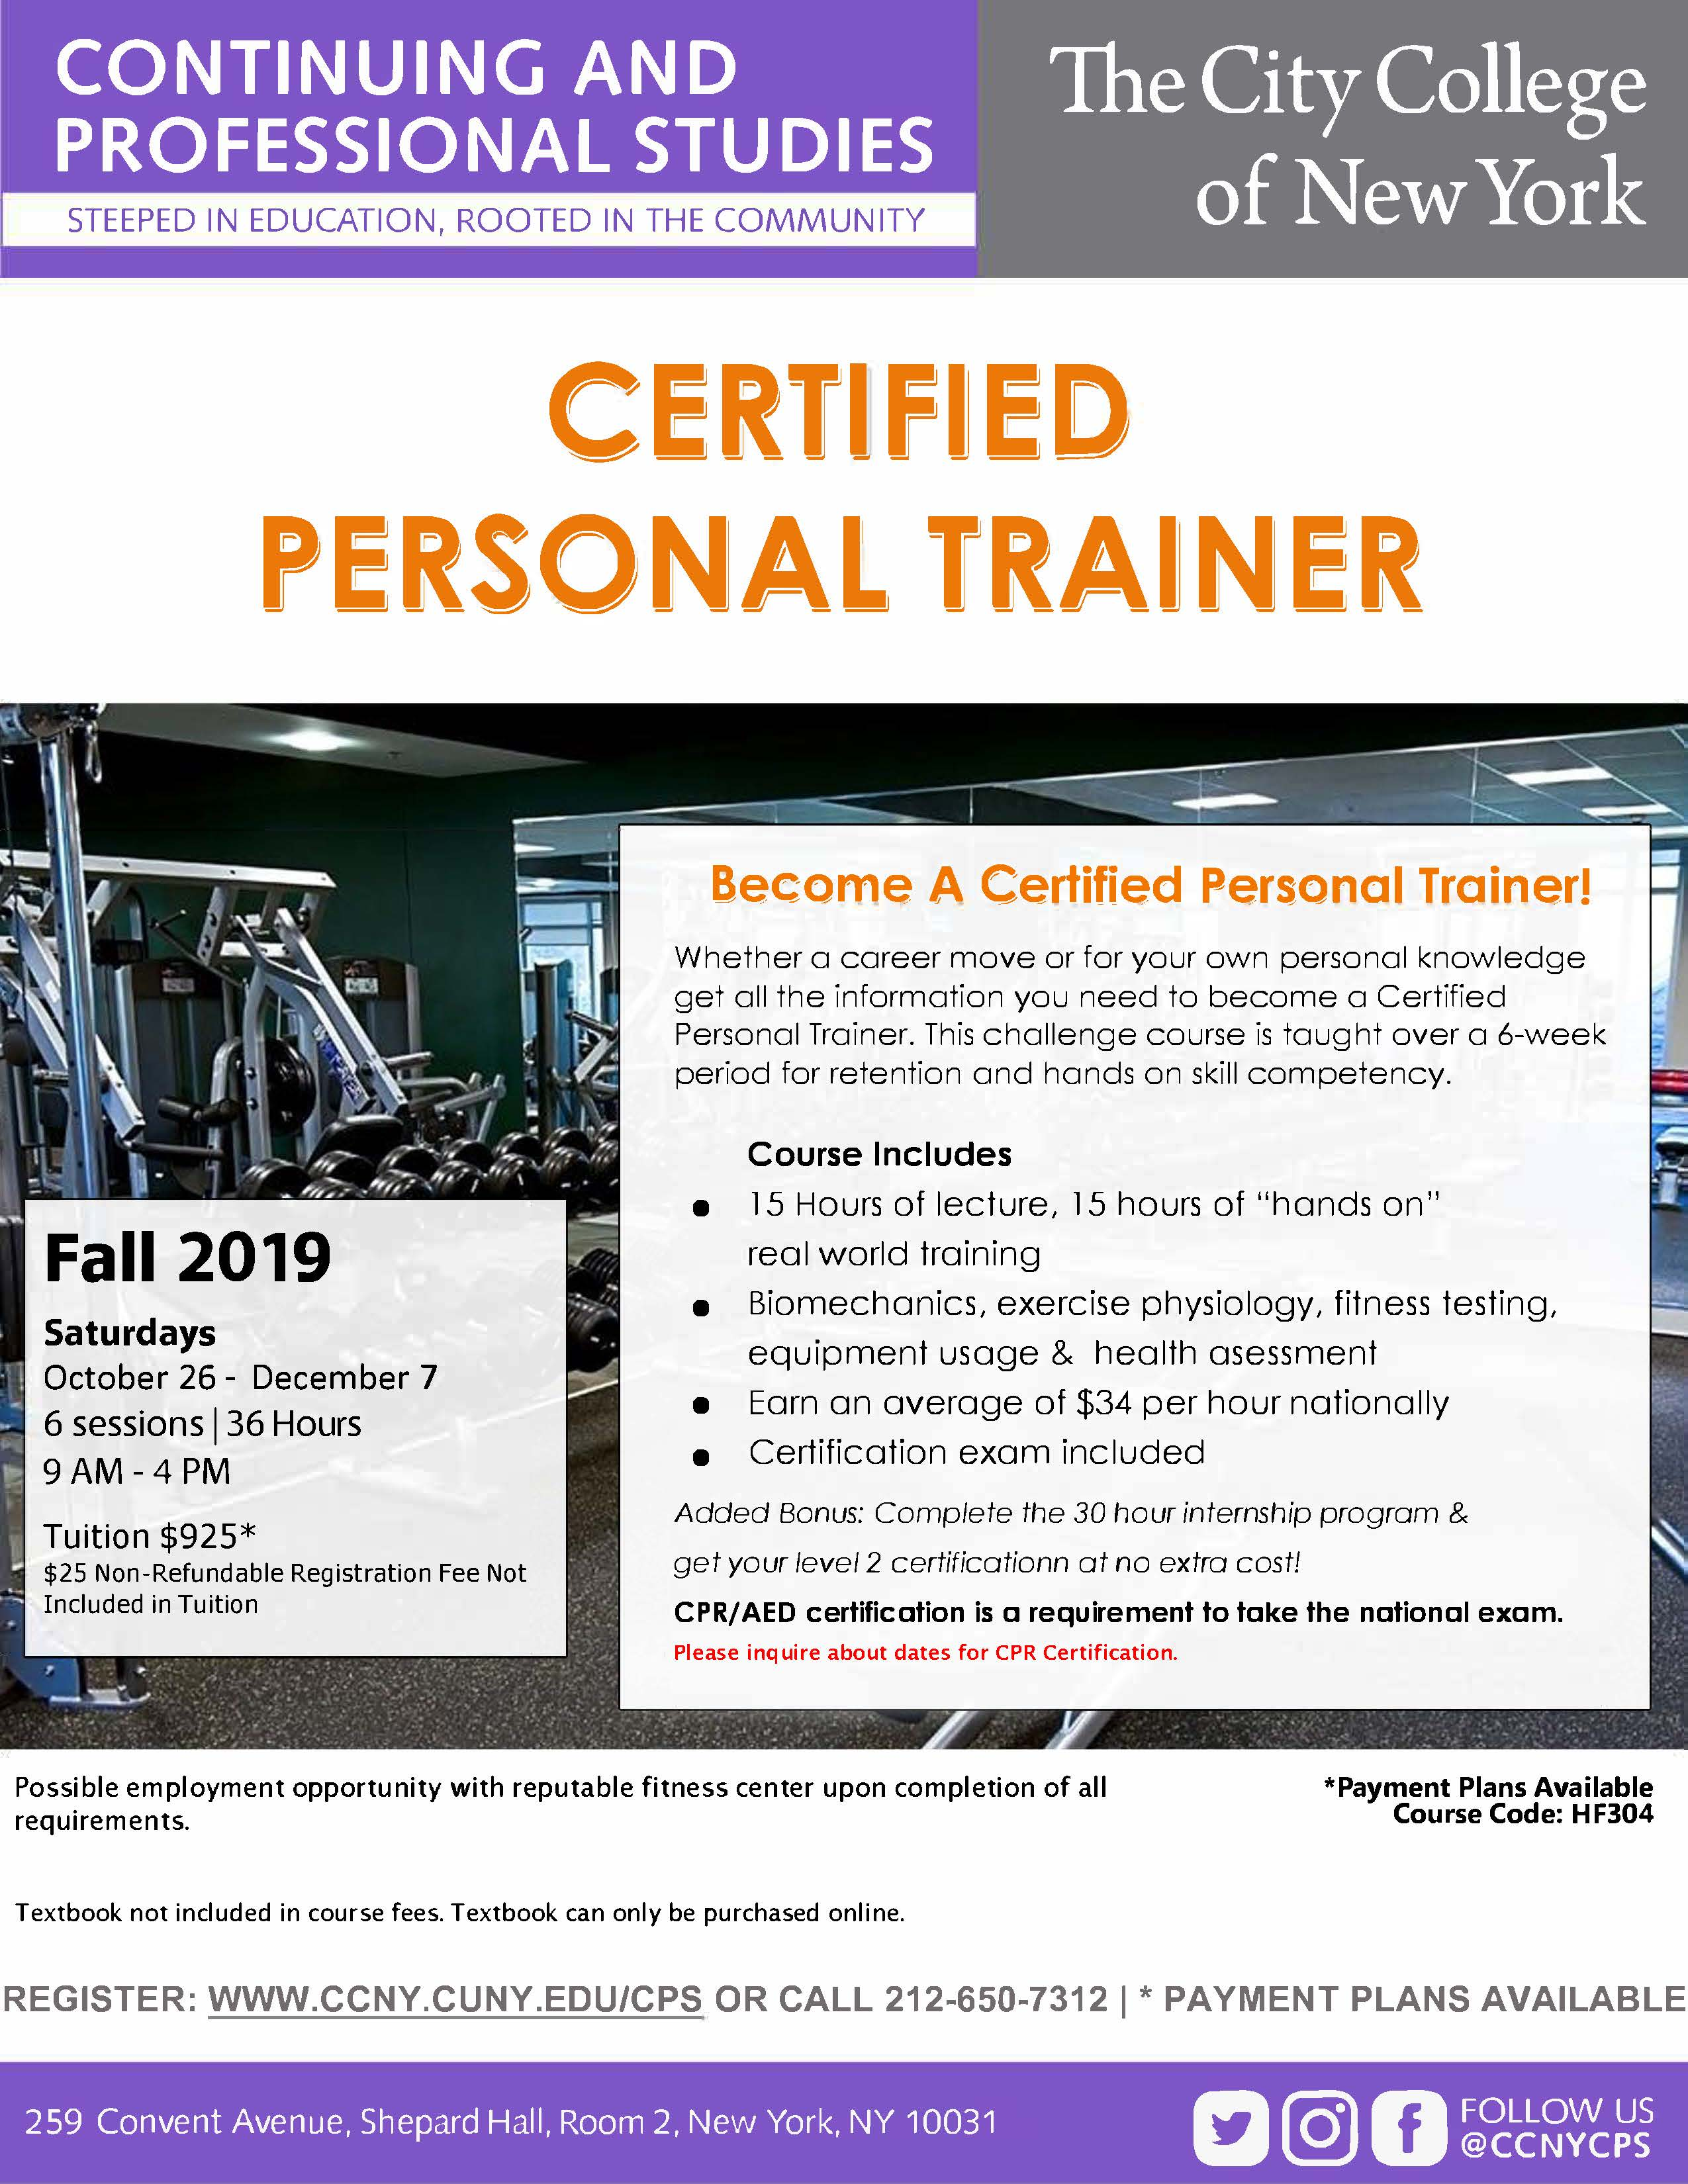 personal trainer certified certificate ged diploma hse cuny college aed cpr prerequisite receive required york